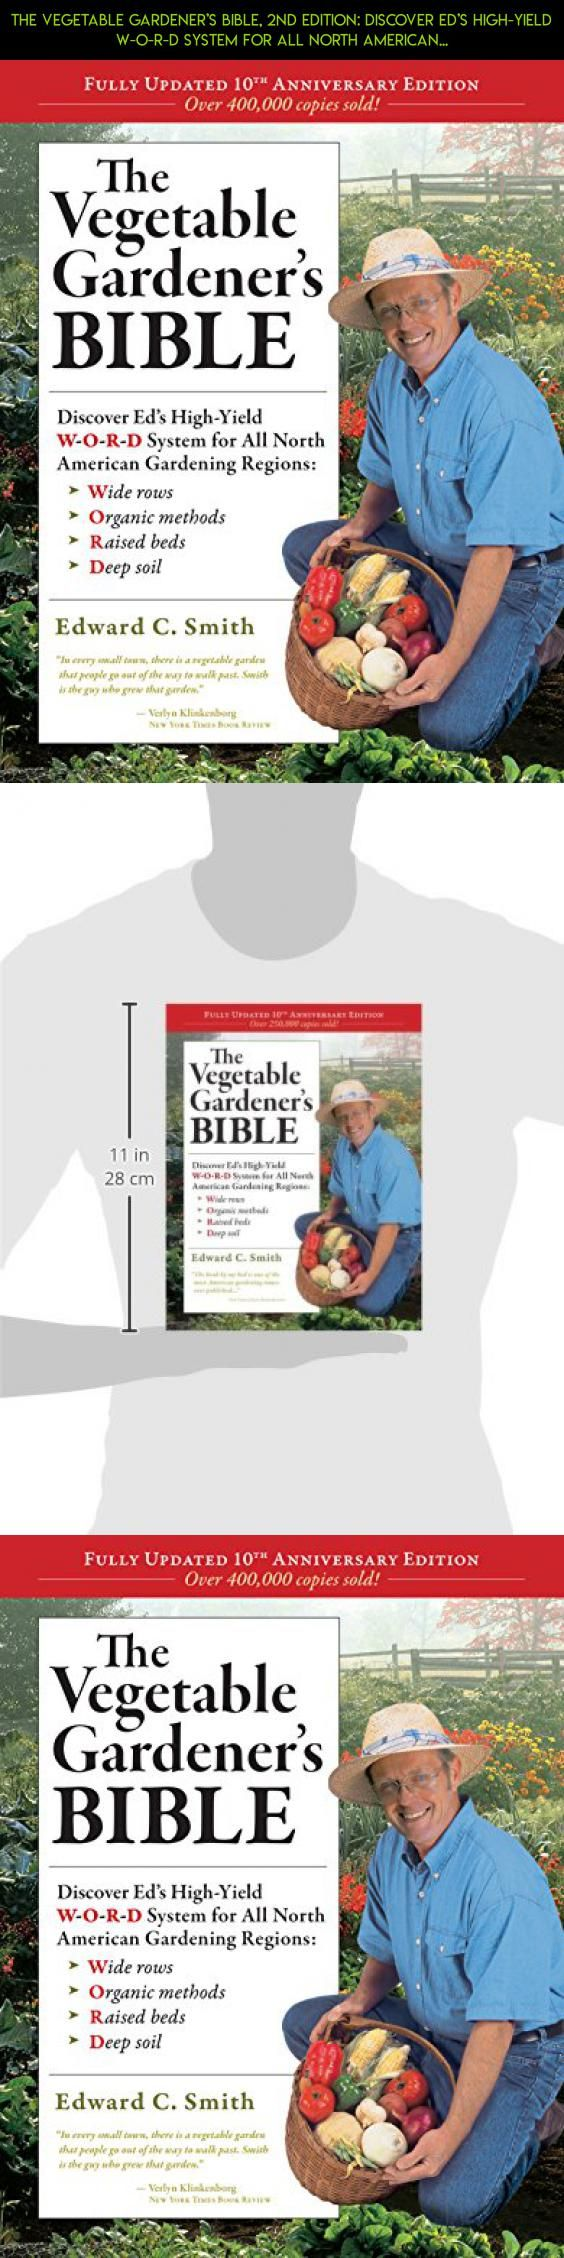 The Vegetable Gardener's Bible, 2nd Edition: Discover Ed's High-Yield W-O-R-D System for All North American Gardening Regions: Wide Rows, Organic Methods, Raised Beds, Deep Soil #gardening #racing #technology #tech #gadgets #products #101 #camera #shopping #fpv #kit #drone #parts #plans